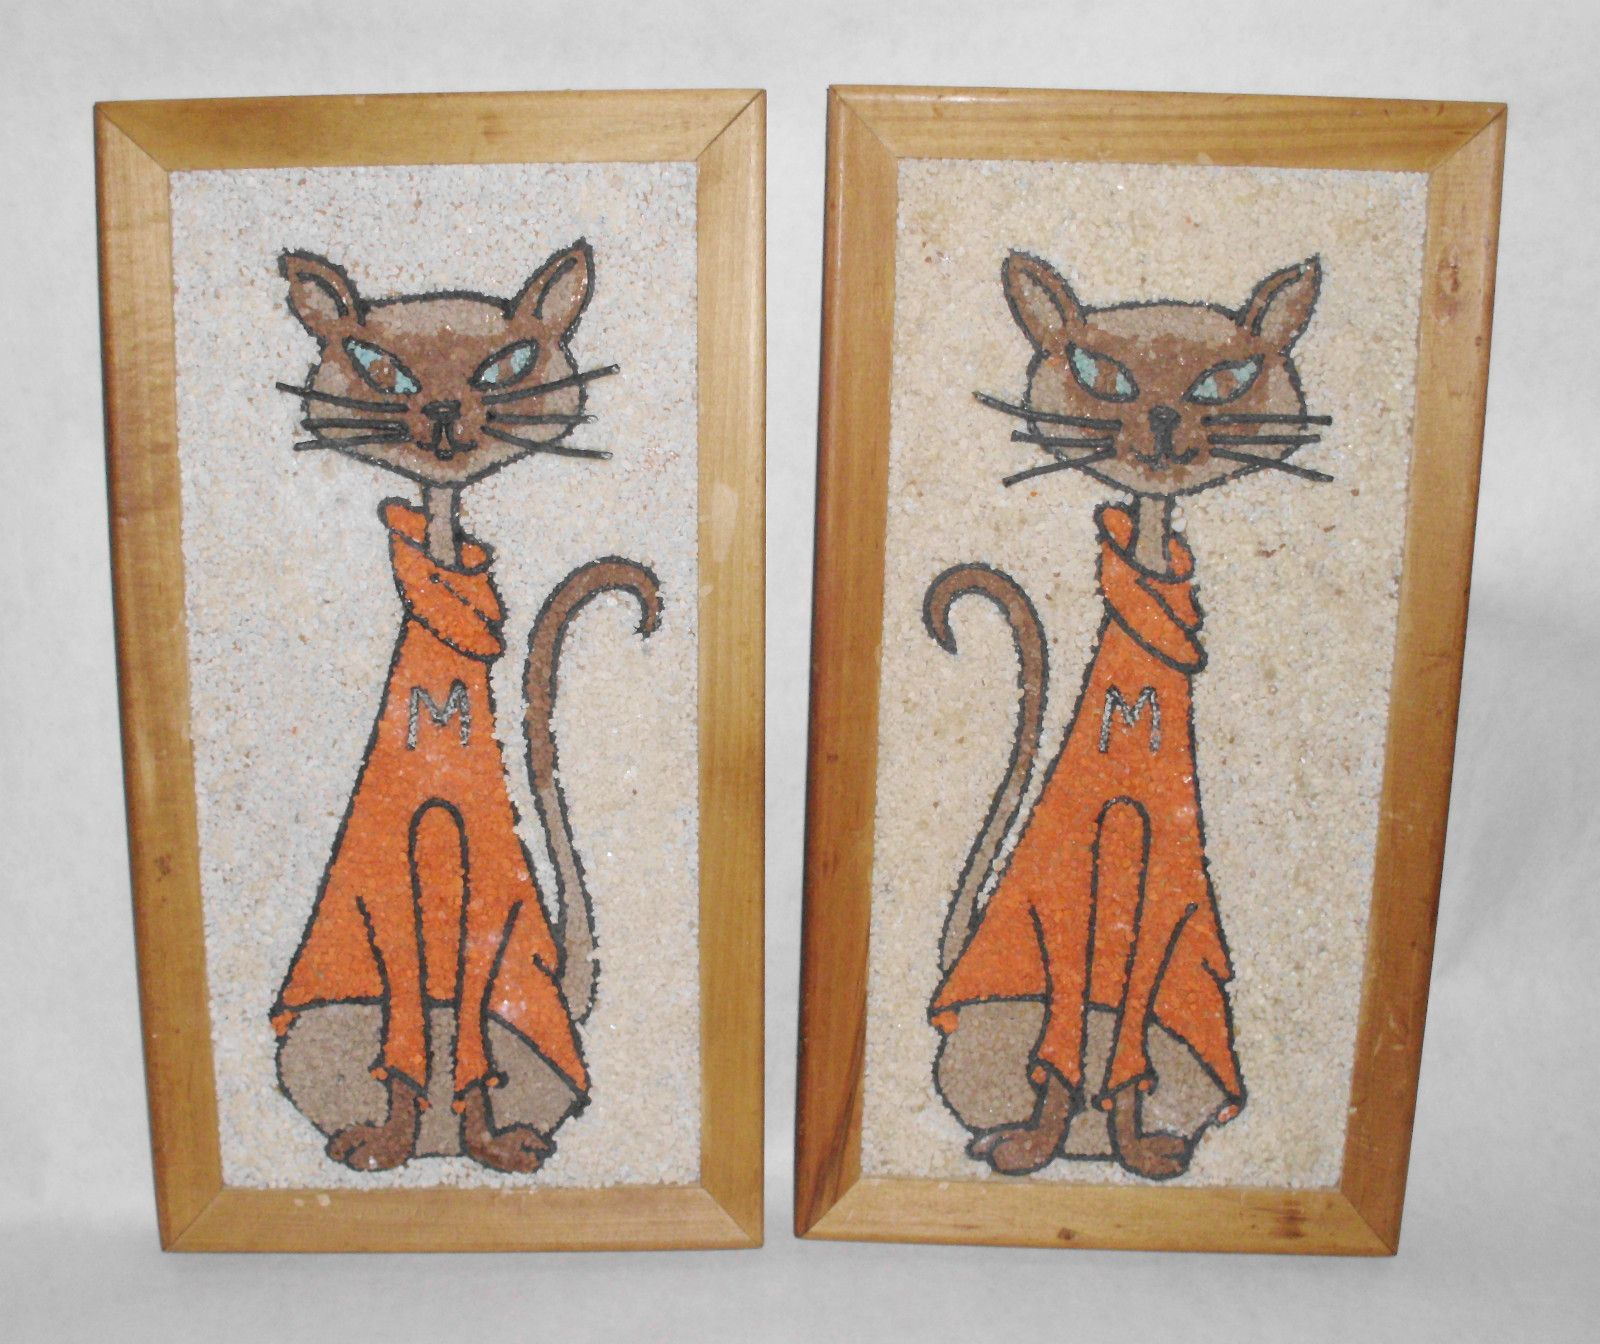 Fab 60s Artwork: Pebble Art Cats In Orange Turtlenecks! So Mid-'60s Fab